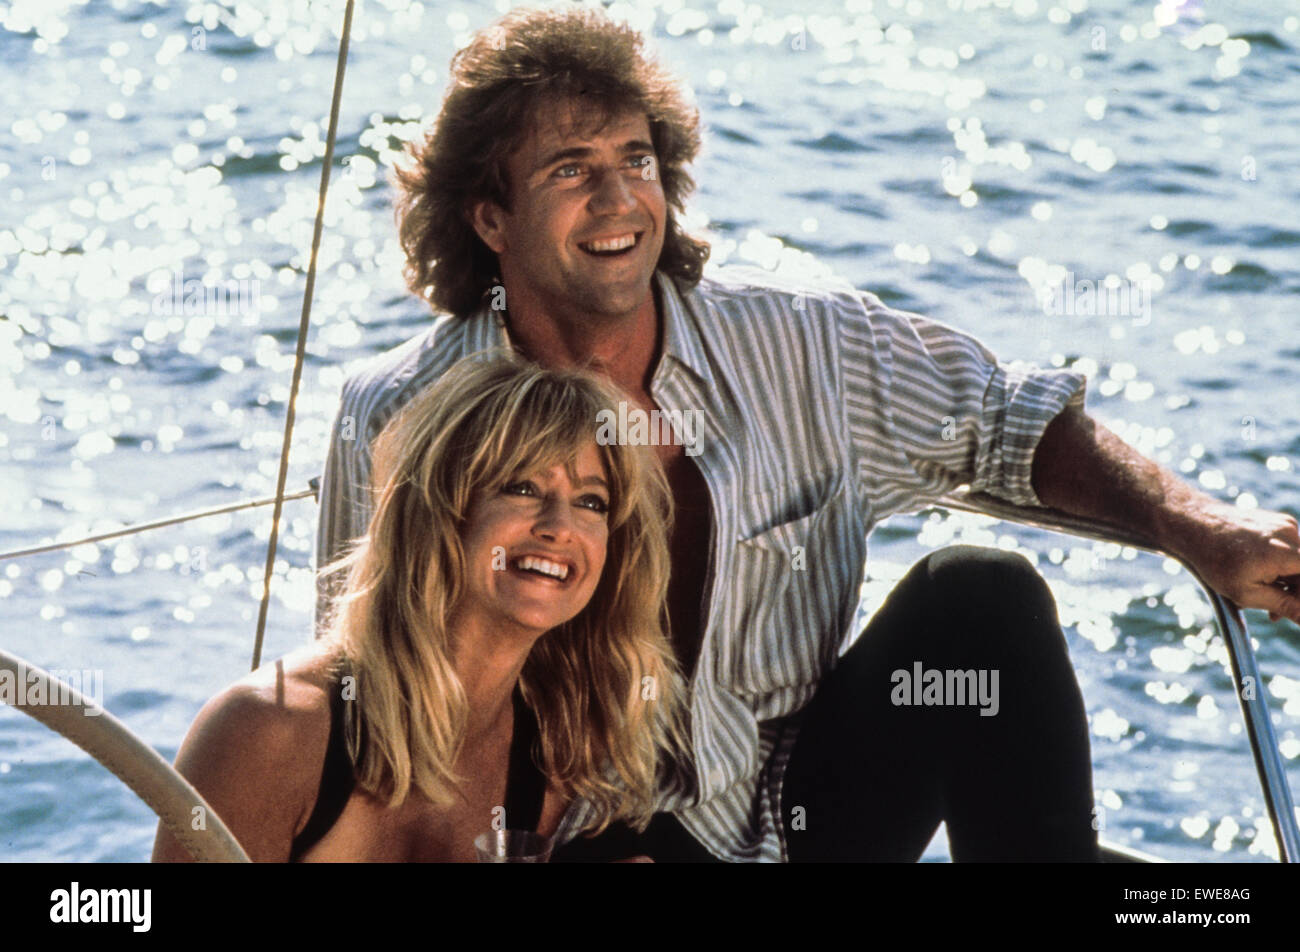 Mel Gibson, Goldie Hawn, bird on a wire, 1990 - Stock Image